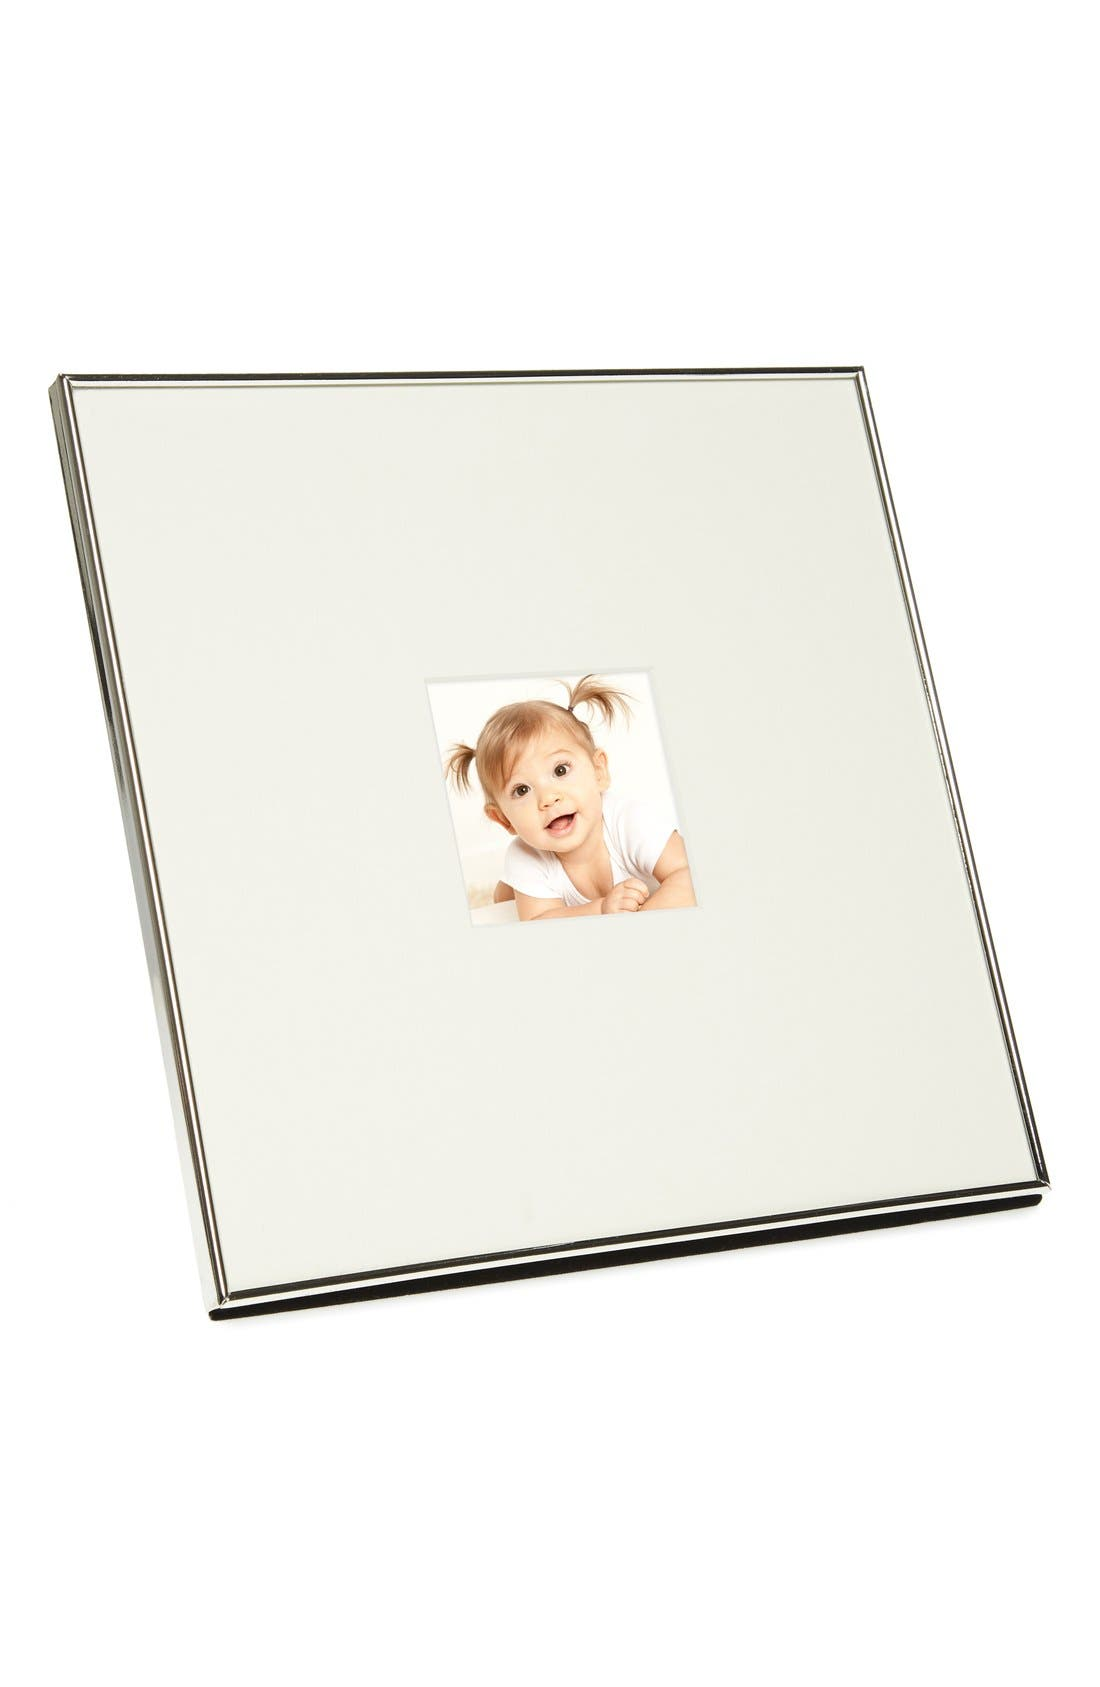 Era Home Matted Picture Frame